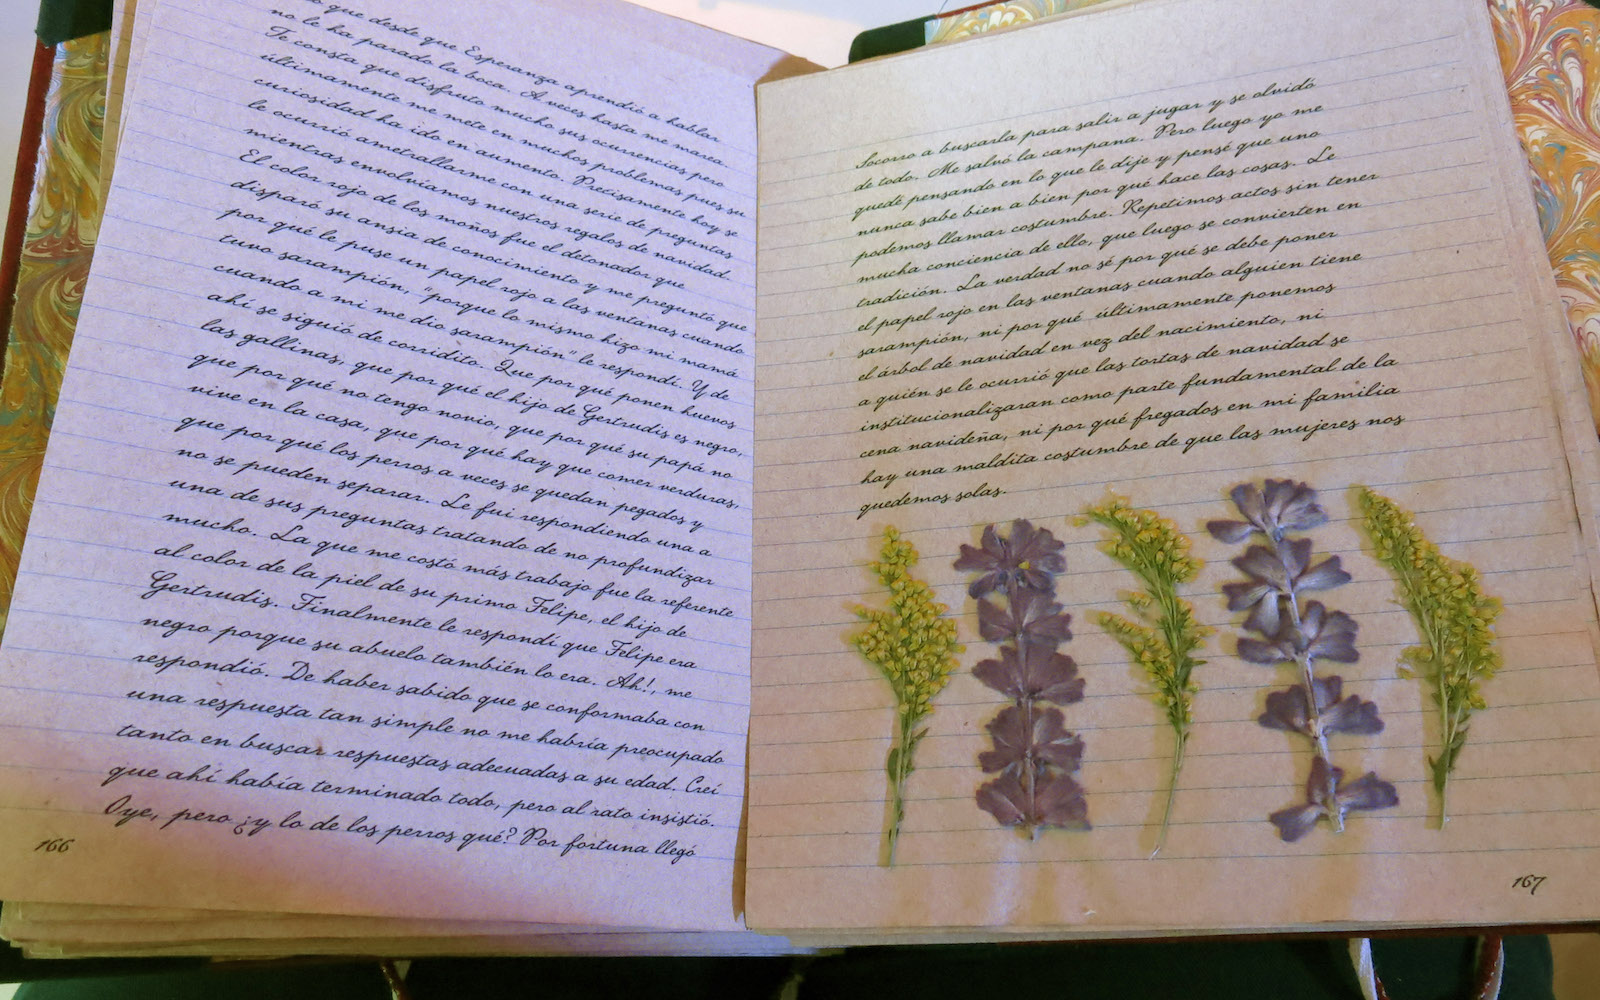 """Dried flowers and herbs a pressed inside the original manuscript of Laura Esquivel's """"El diario de Tita"""" at a press conference in Mexico City on Wednesday, May 18, 2016.Esquivel presented """"El diario de Tita"""" a book with new aspects from her popular novel """"Como agua para chocolate."""" The author said she plans to convert the story into a trilogy. (AP Photo/Berenice Bautista) Esquivel presented """"El diario de Tita"""" a book with new aspects from her popular novel """"Como agua para chocolate."""" The author said she plans to convert the story into a trilogy. (AP Photo/Berenice Bautista)"""